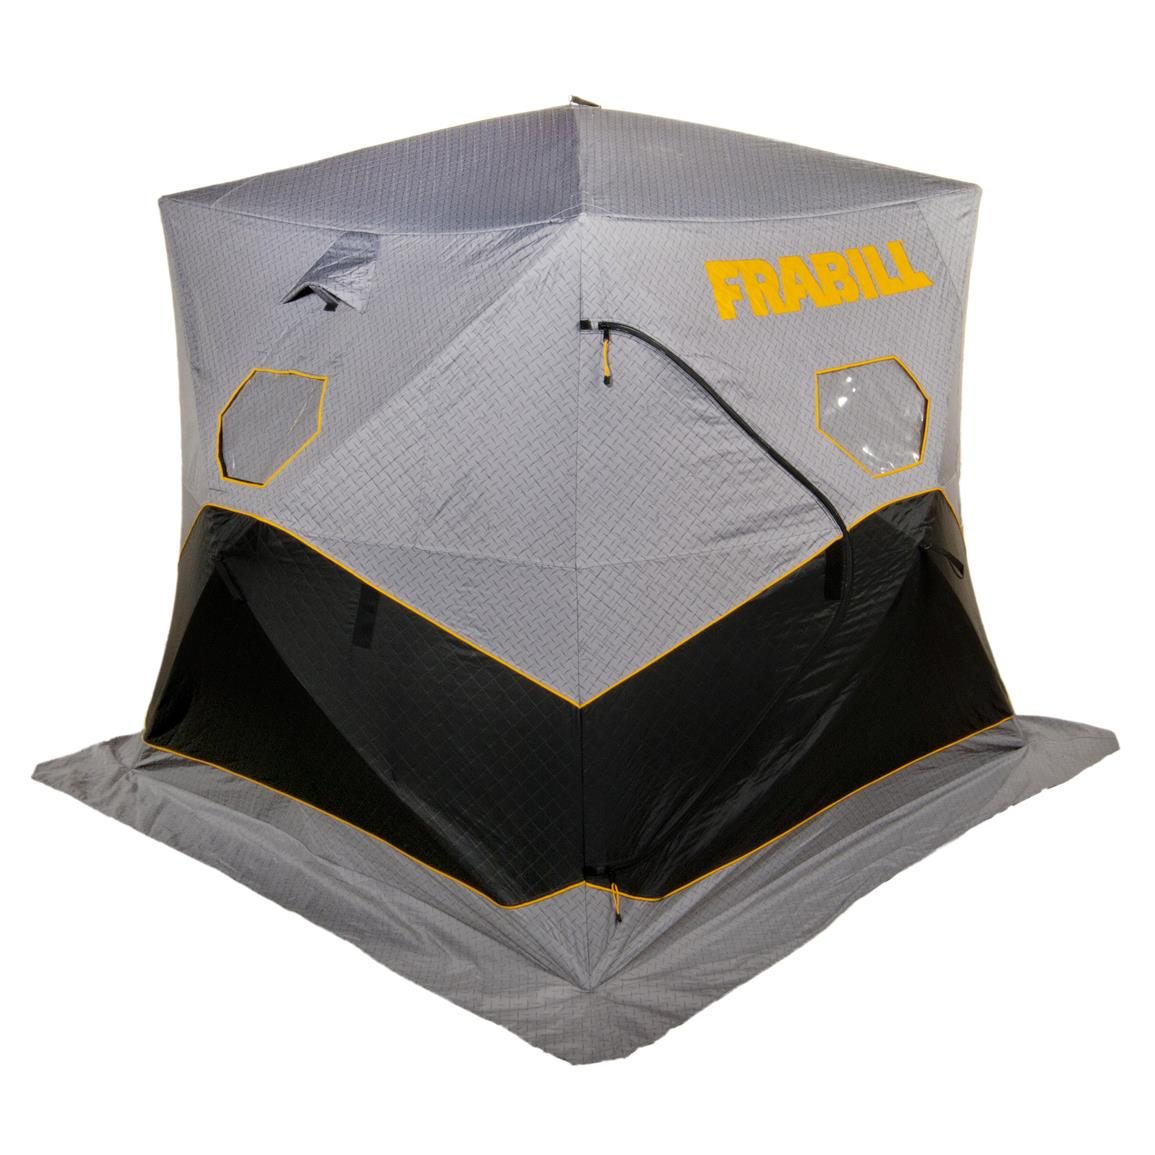 Frabill Bunker 210 Ice Shelter, Insulated, Hub Style, 2-3 Person